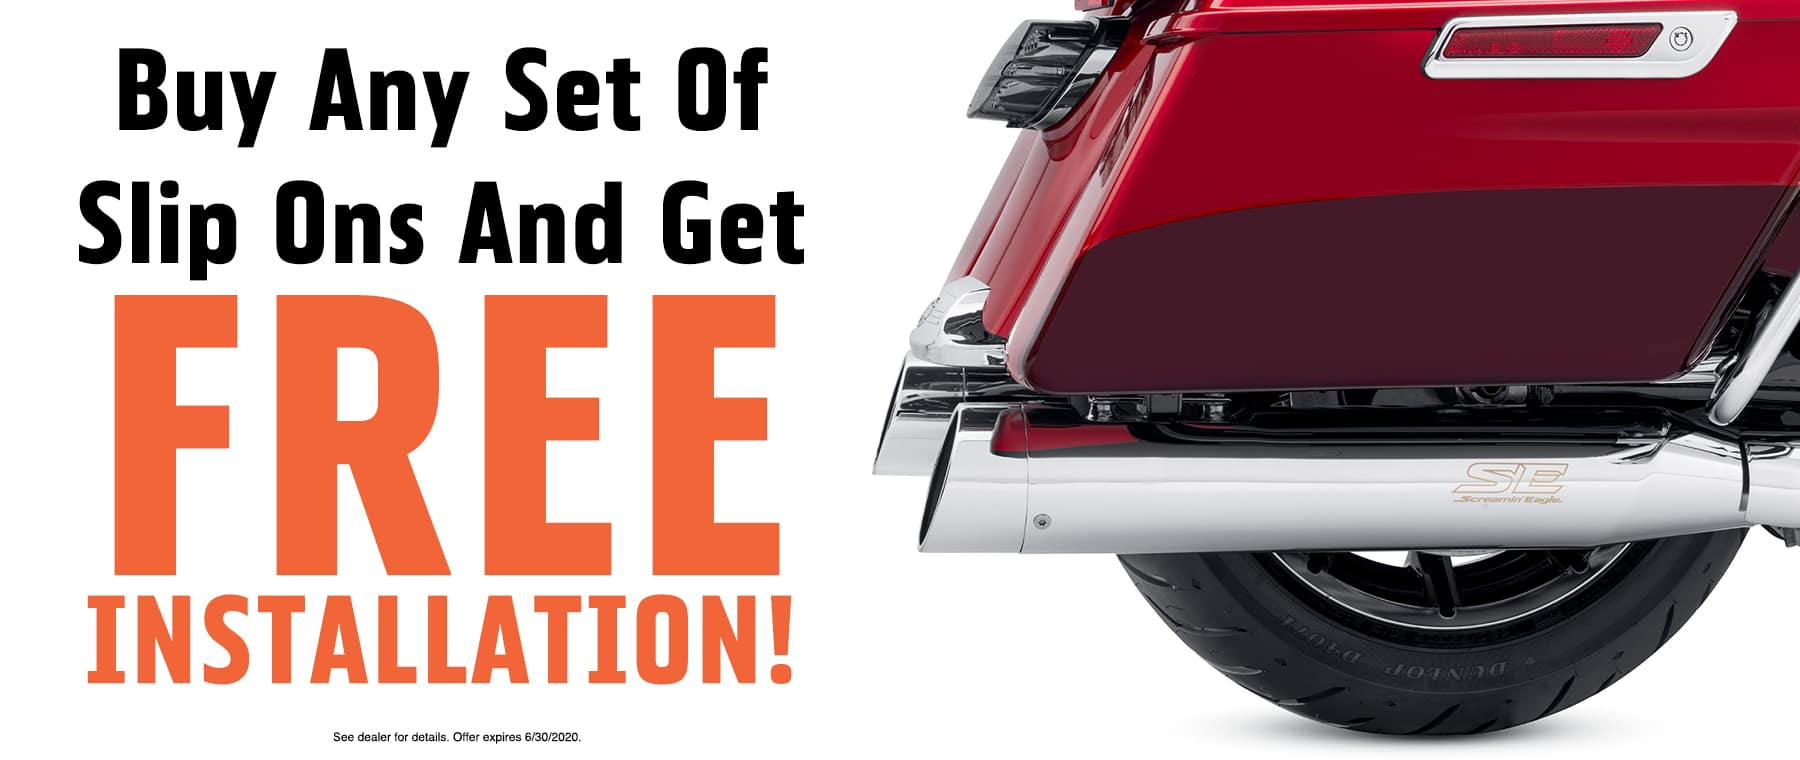 Buy Any Set of Slip Ons and Get Free Installation!